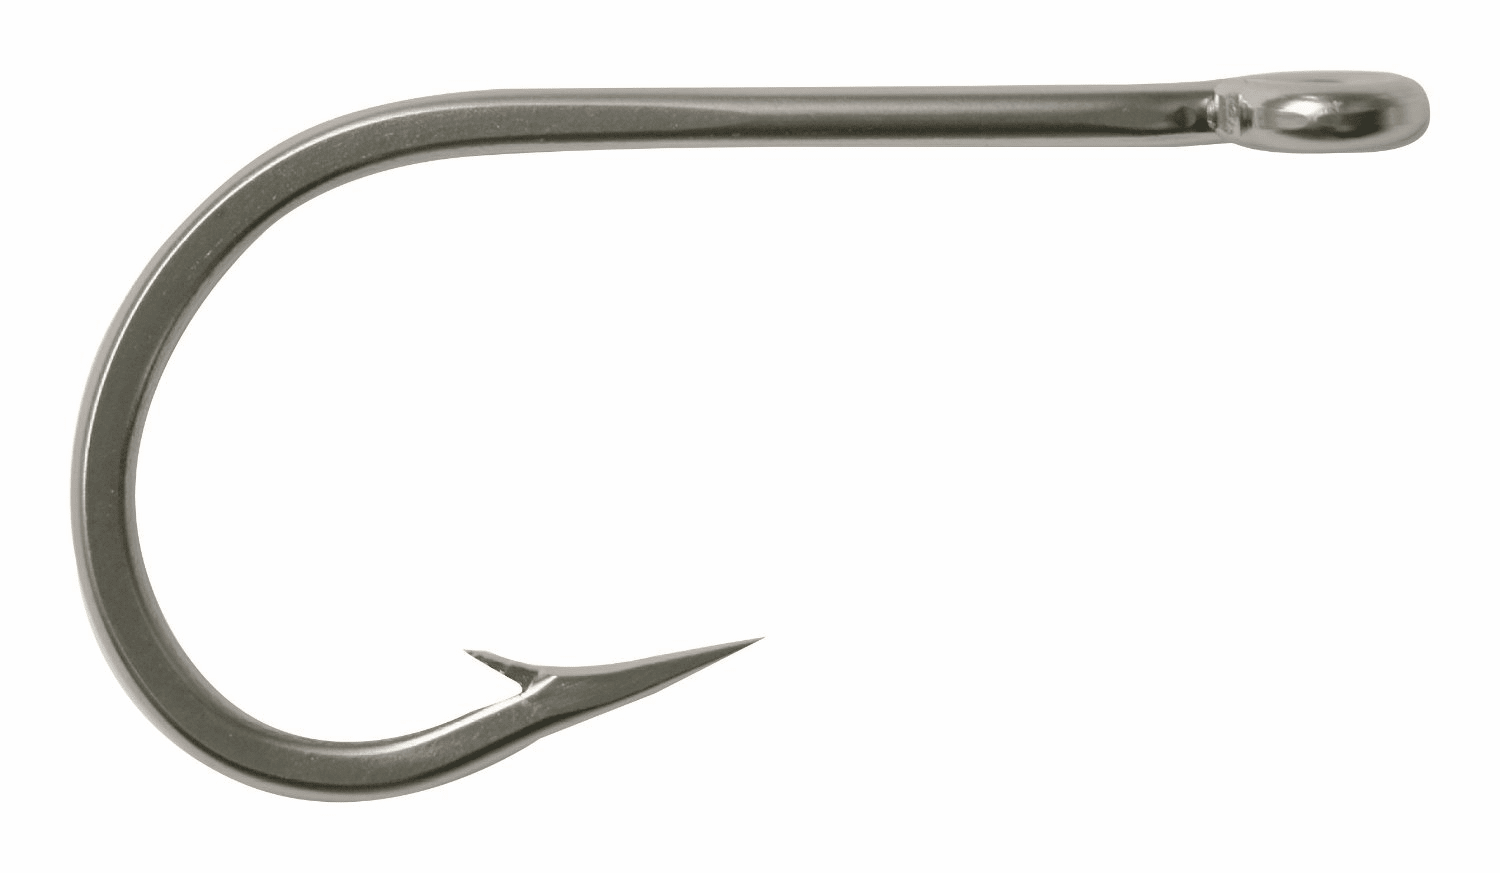 Stainless Steel Trolling Tuna Hooks- Model 7691S - 7/0 - 25 pcs